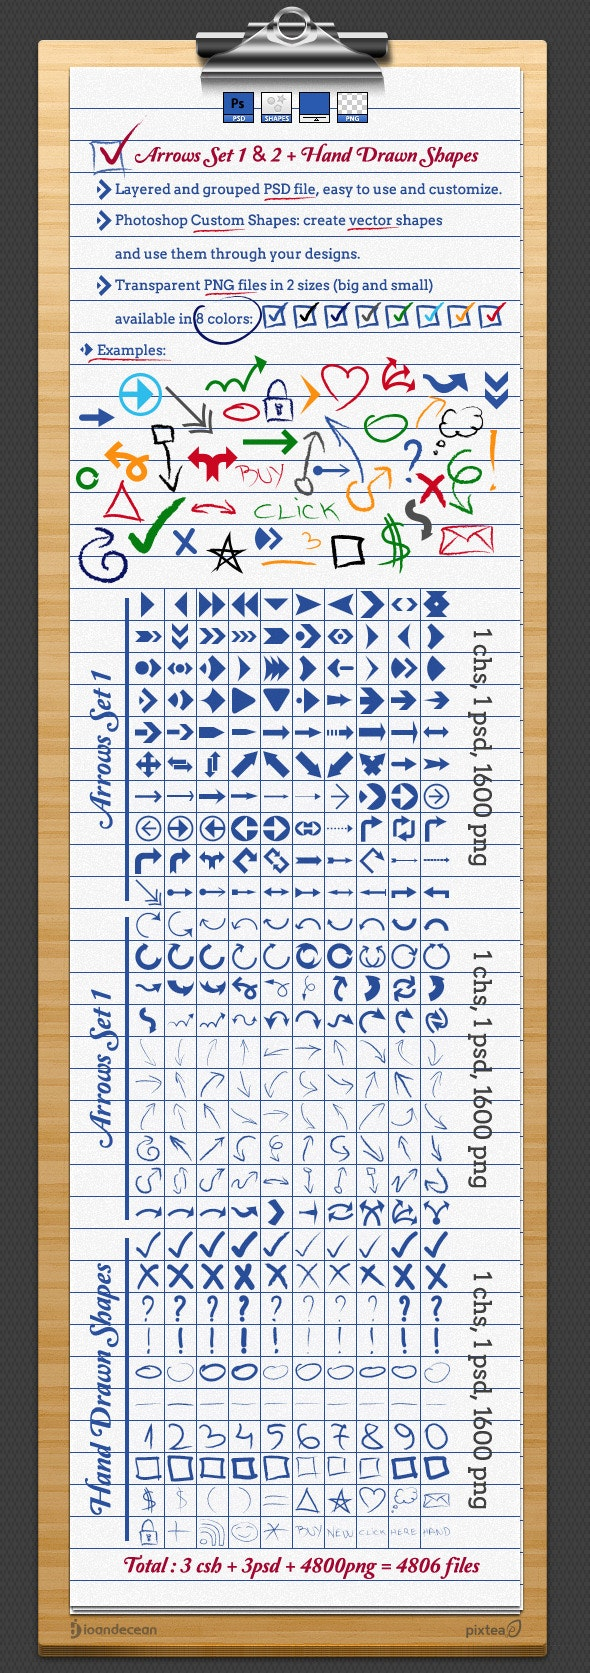 Arrows and Hand Drawn Shapes and Custom Symbols - Photoshop Add-ons